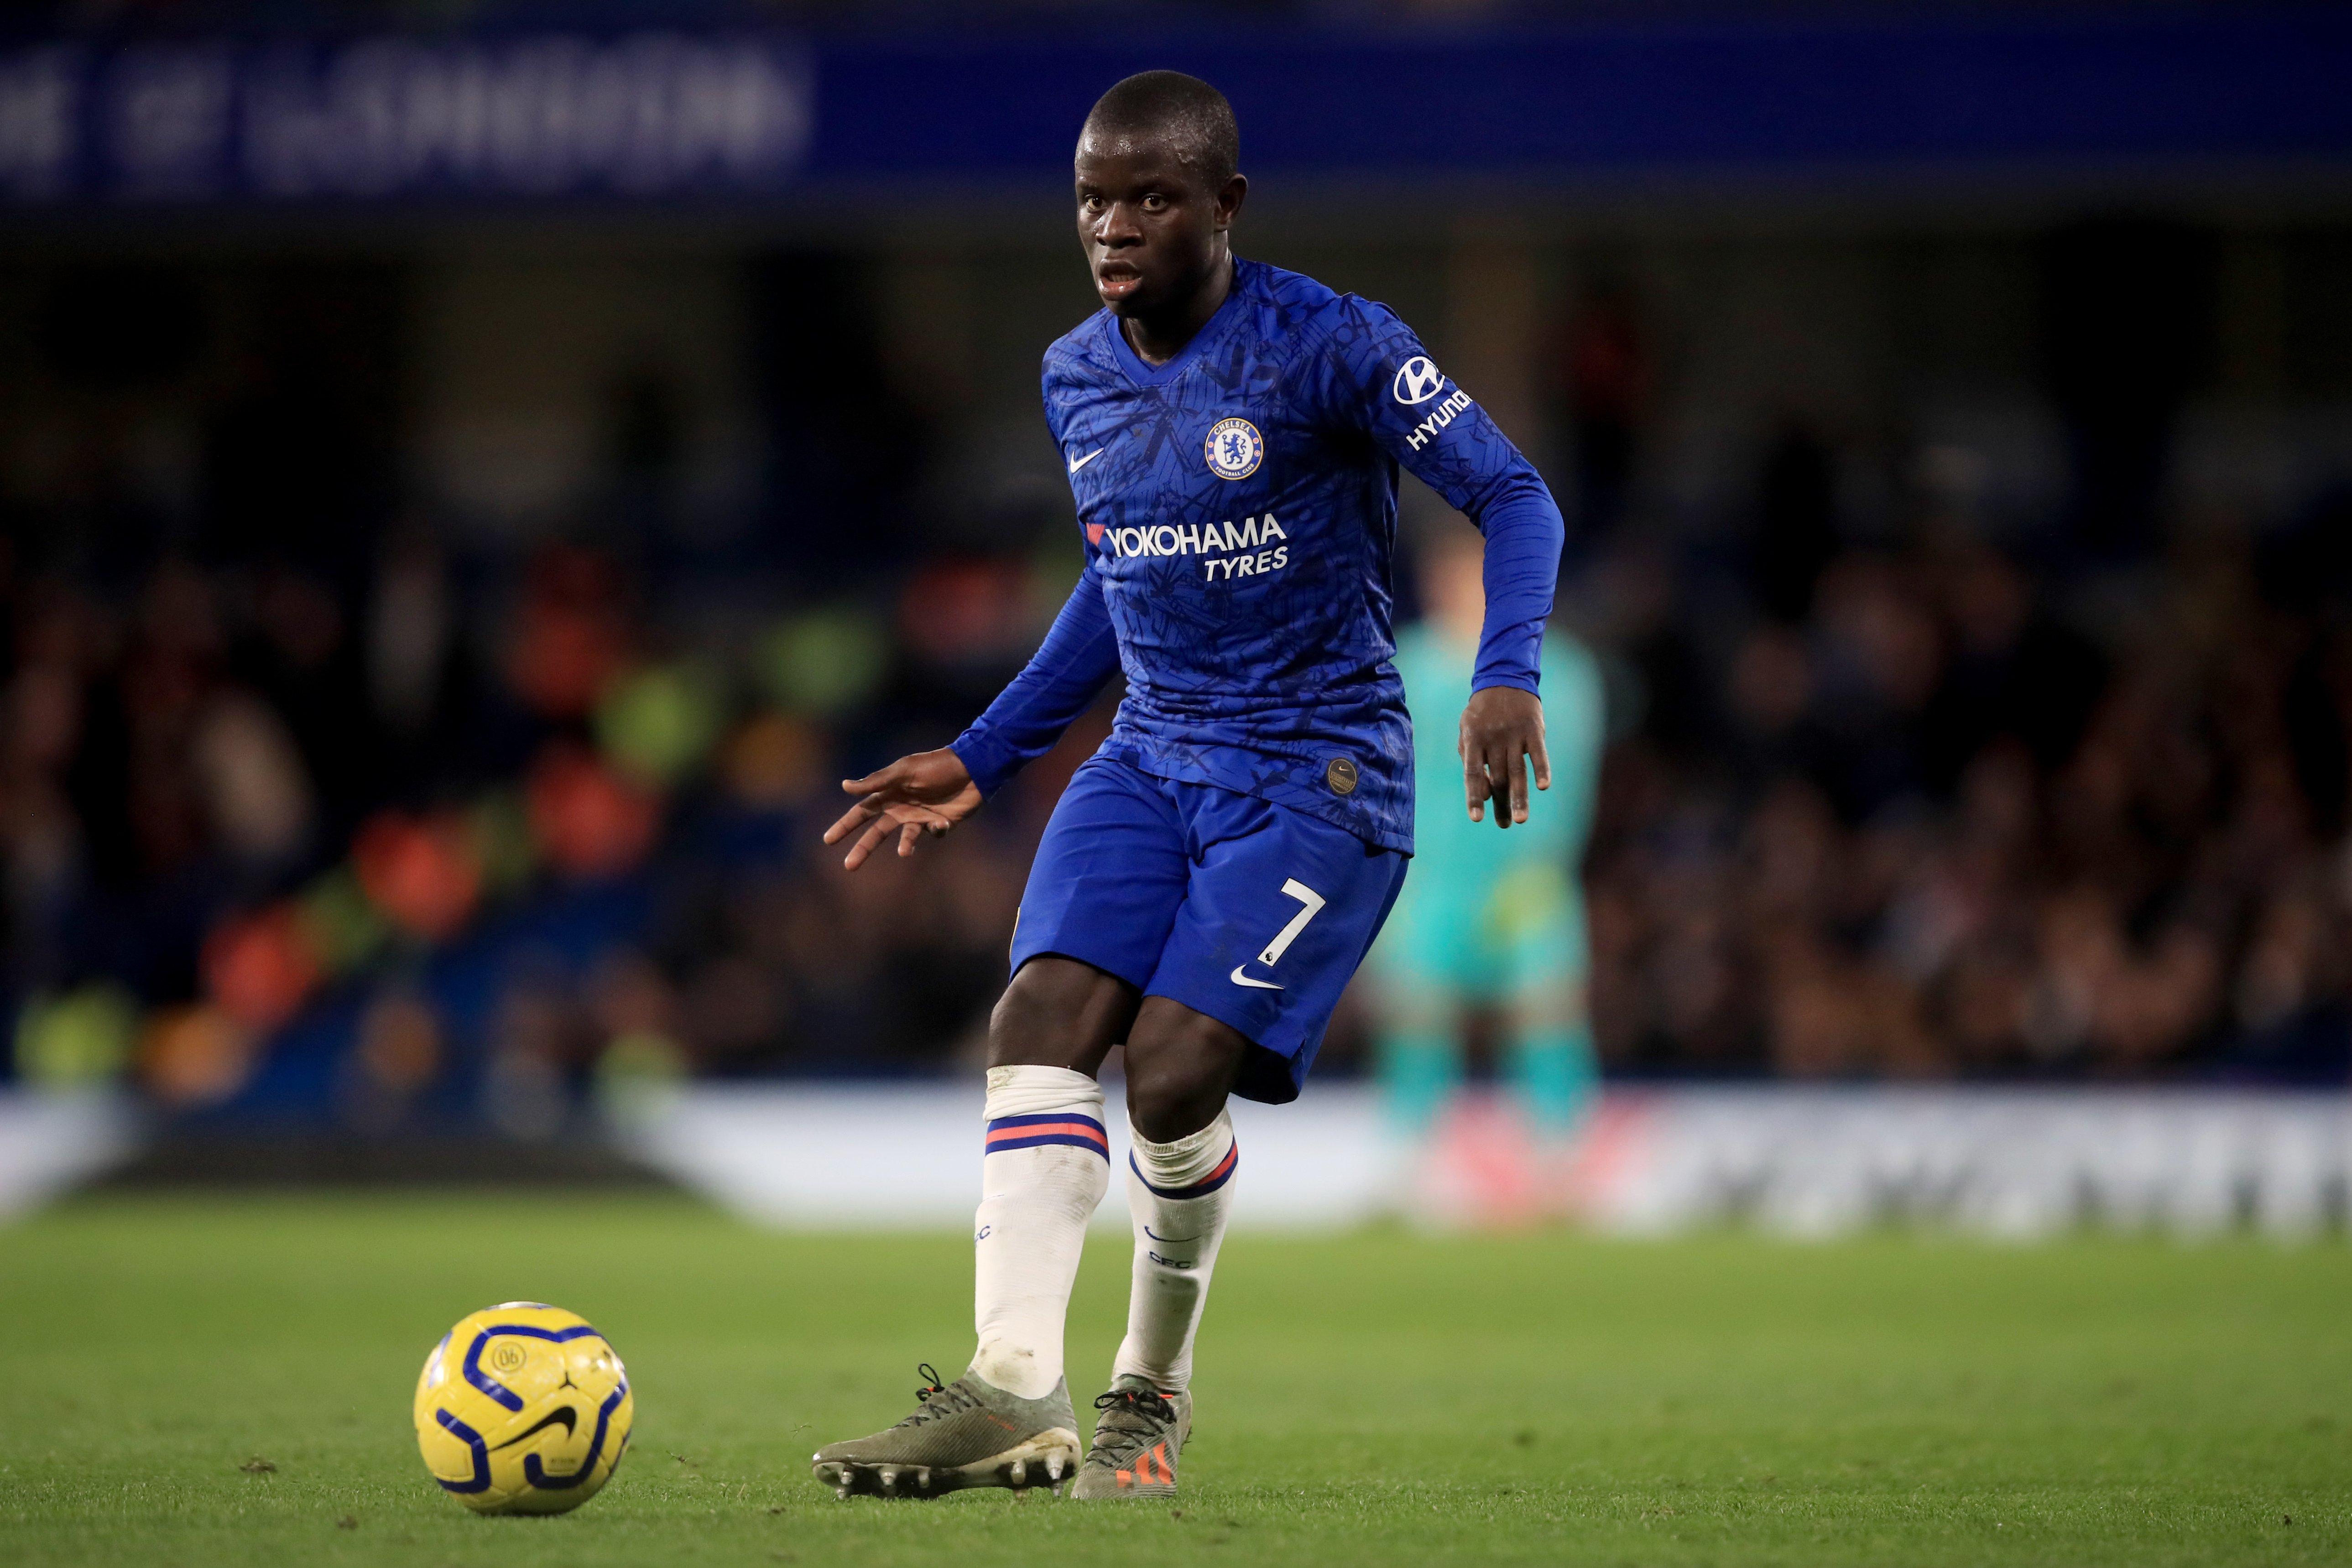 N'Golo Kante To Miss Remainder Of The Season - Kante in action during a match